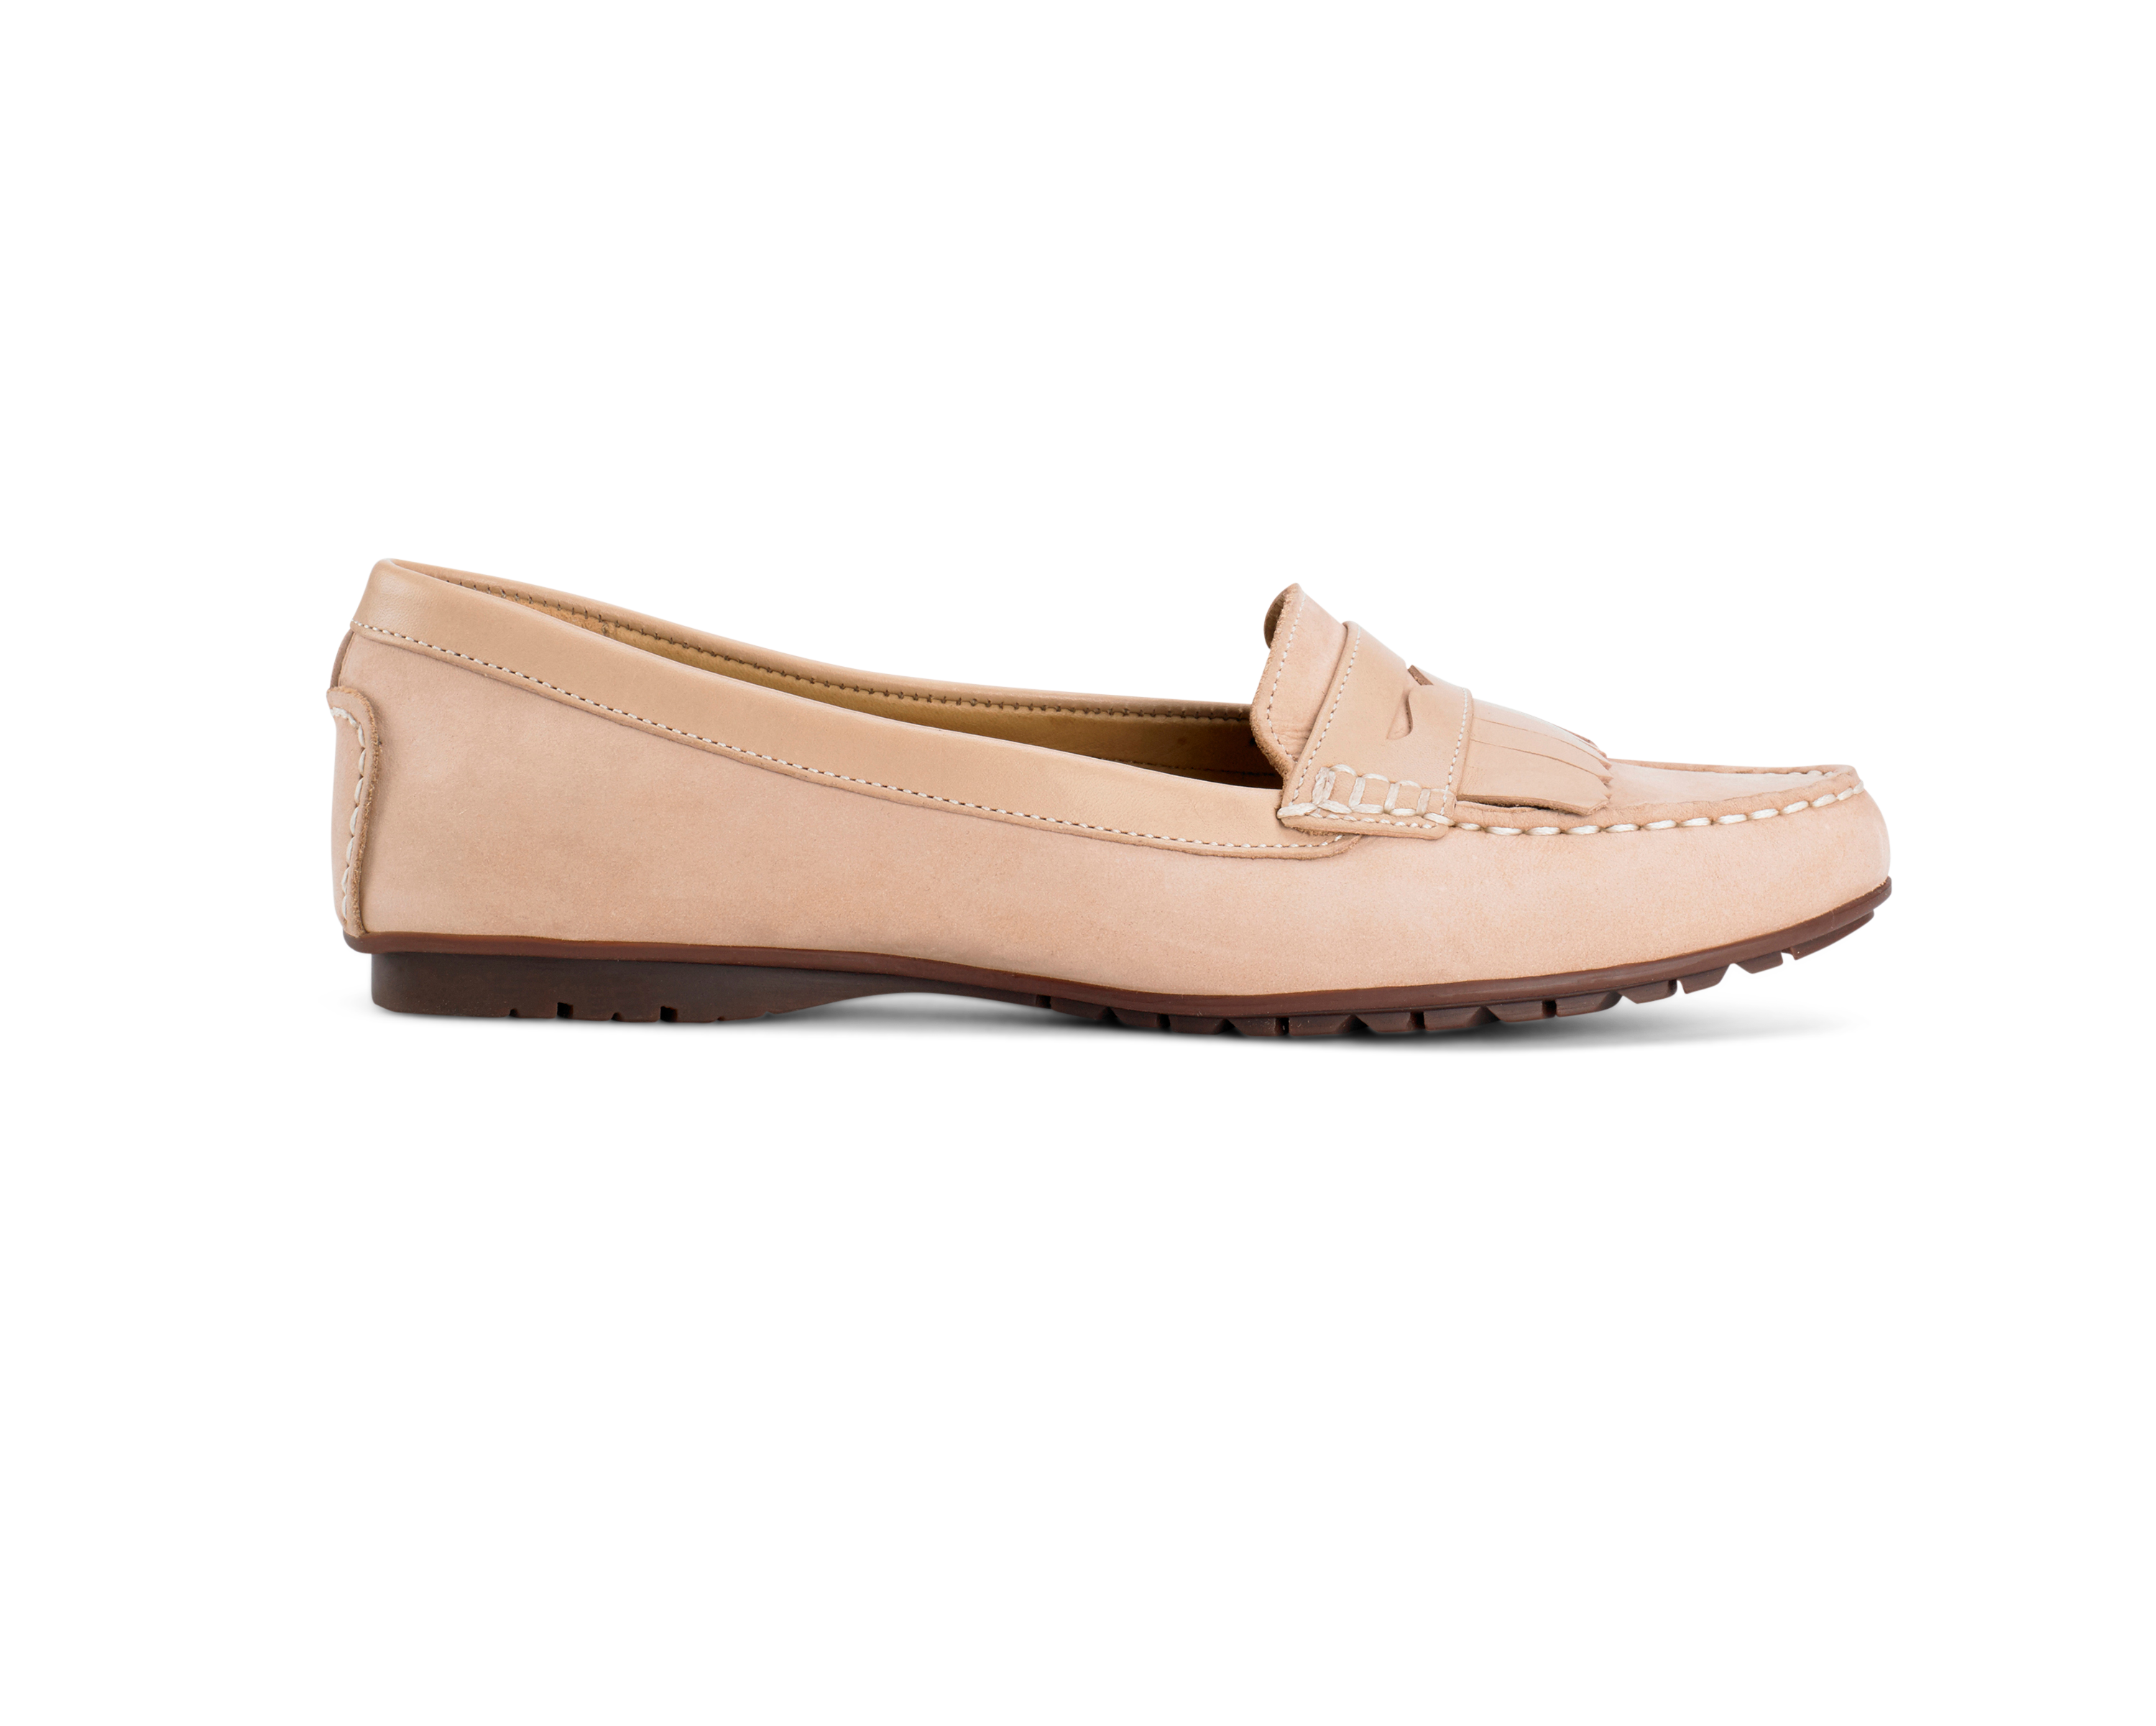 Flat Shoes Women Pink Images PNG Images